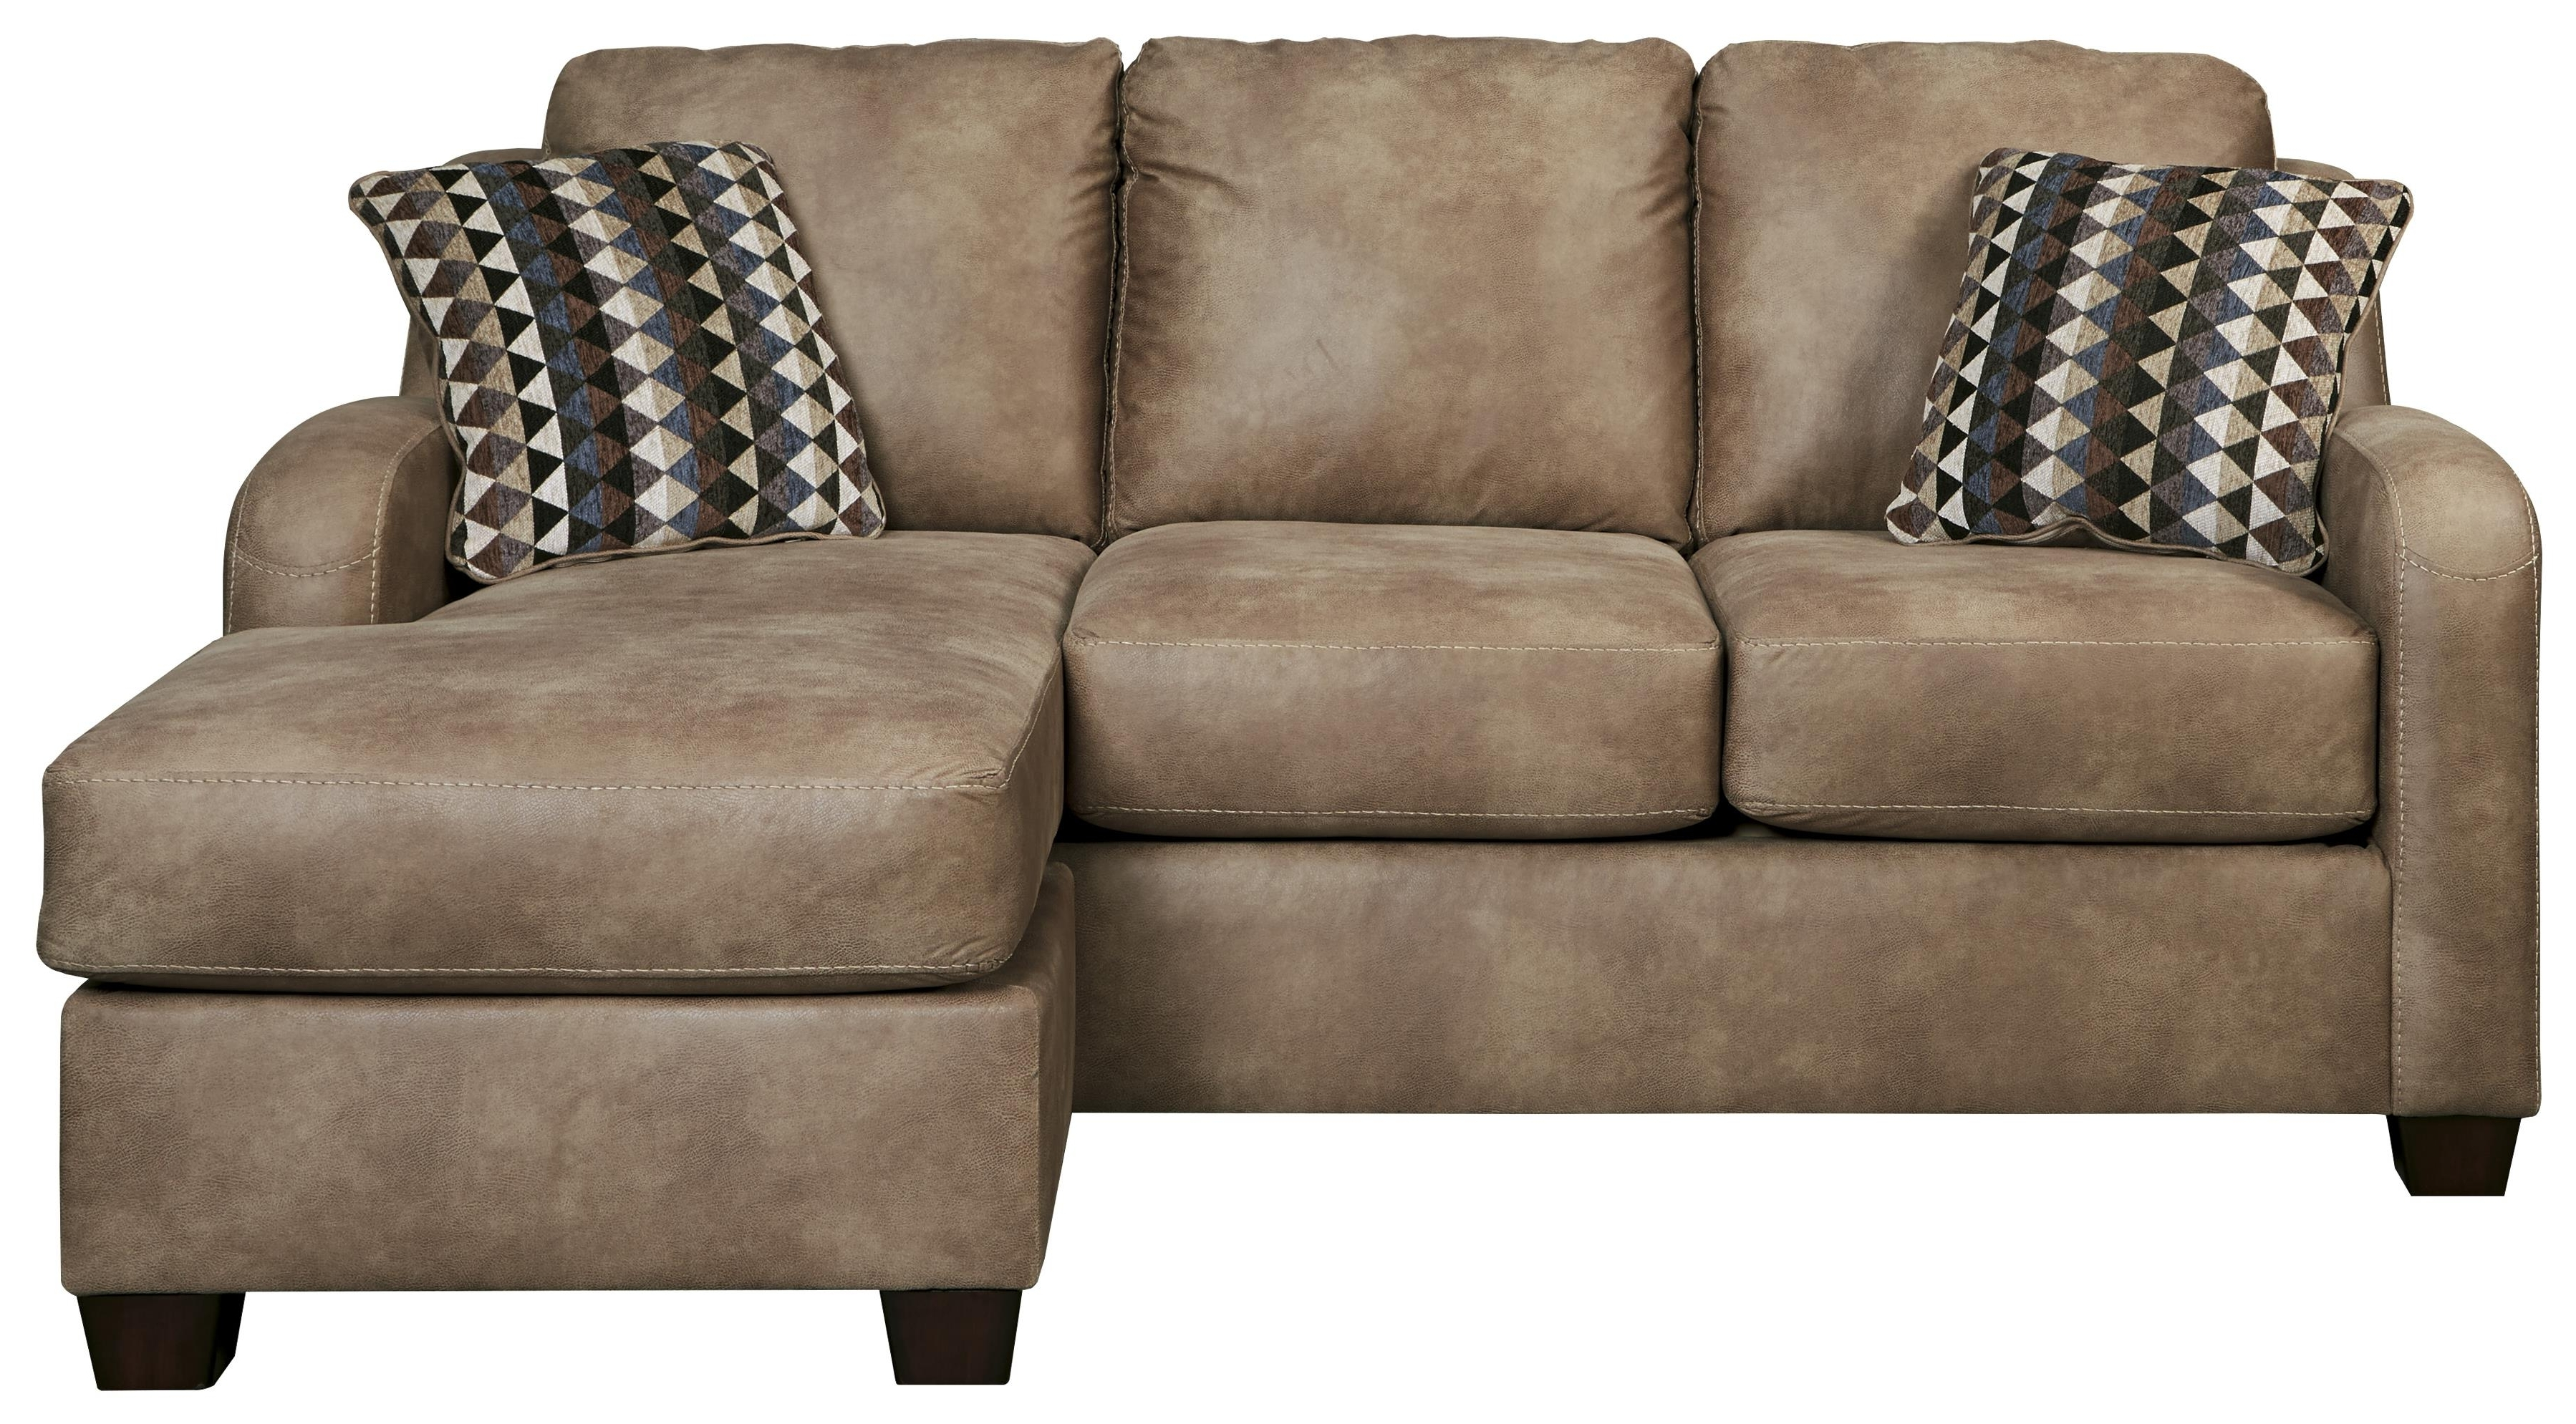 Contemporary Faux Leather Sofa Chaisebenchcraft (View 2 of 15)